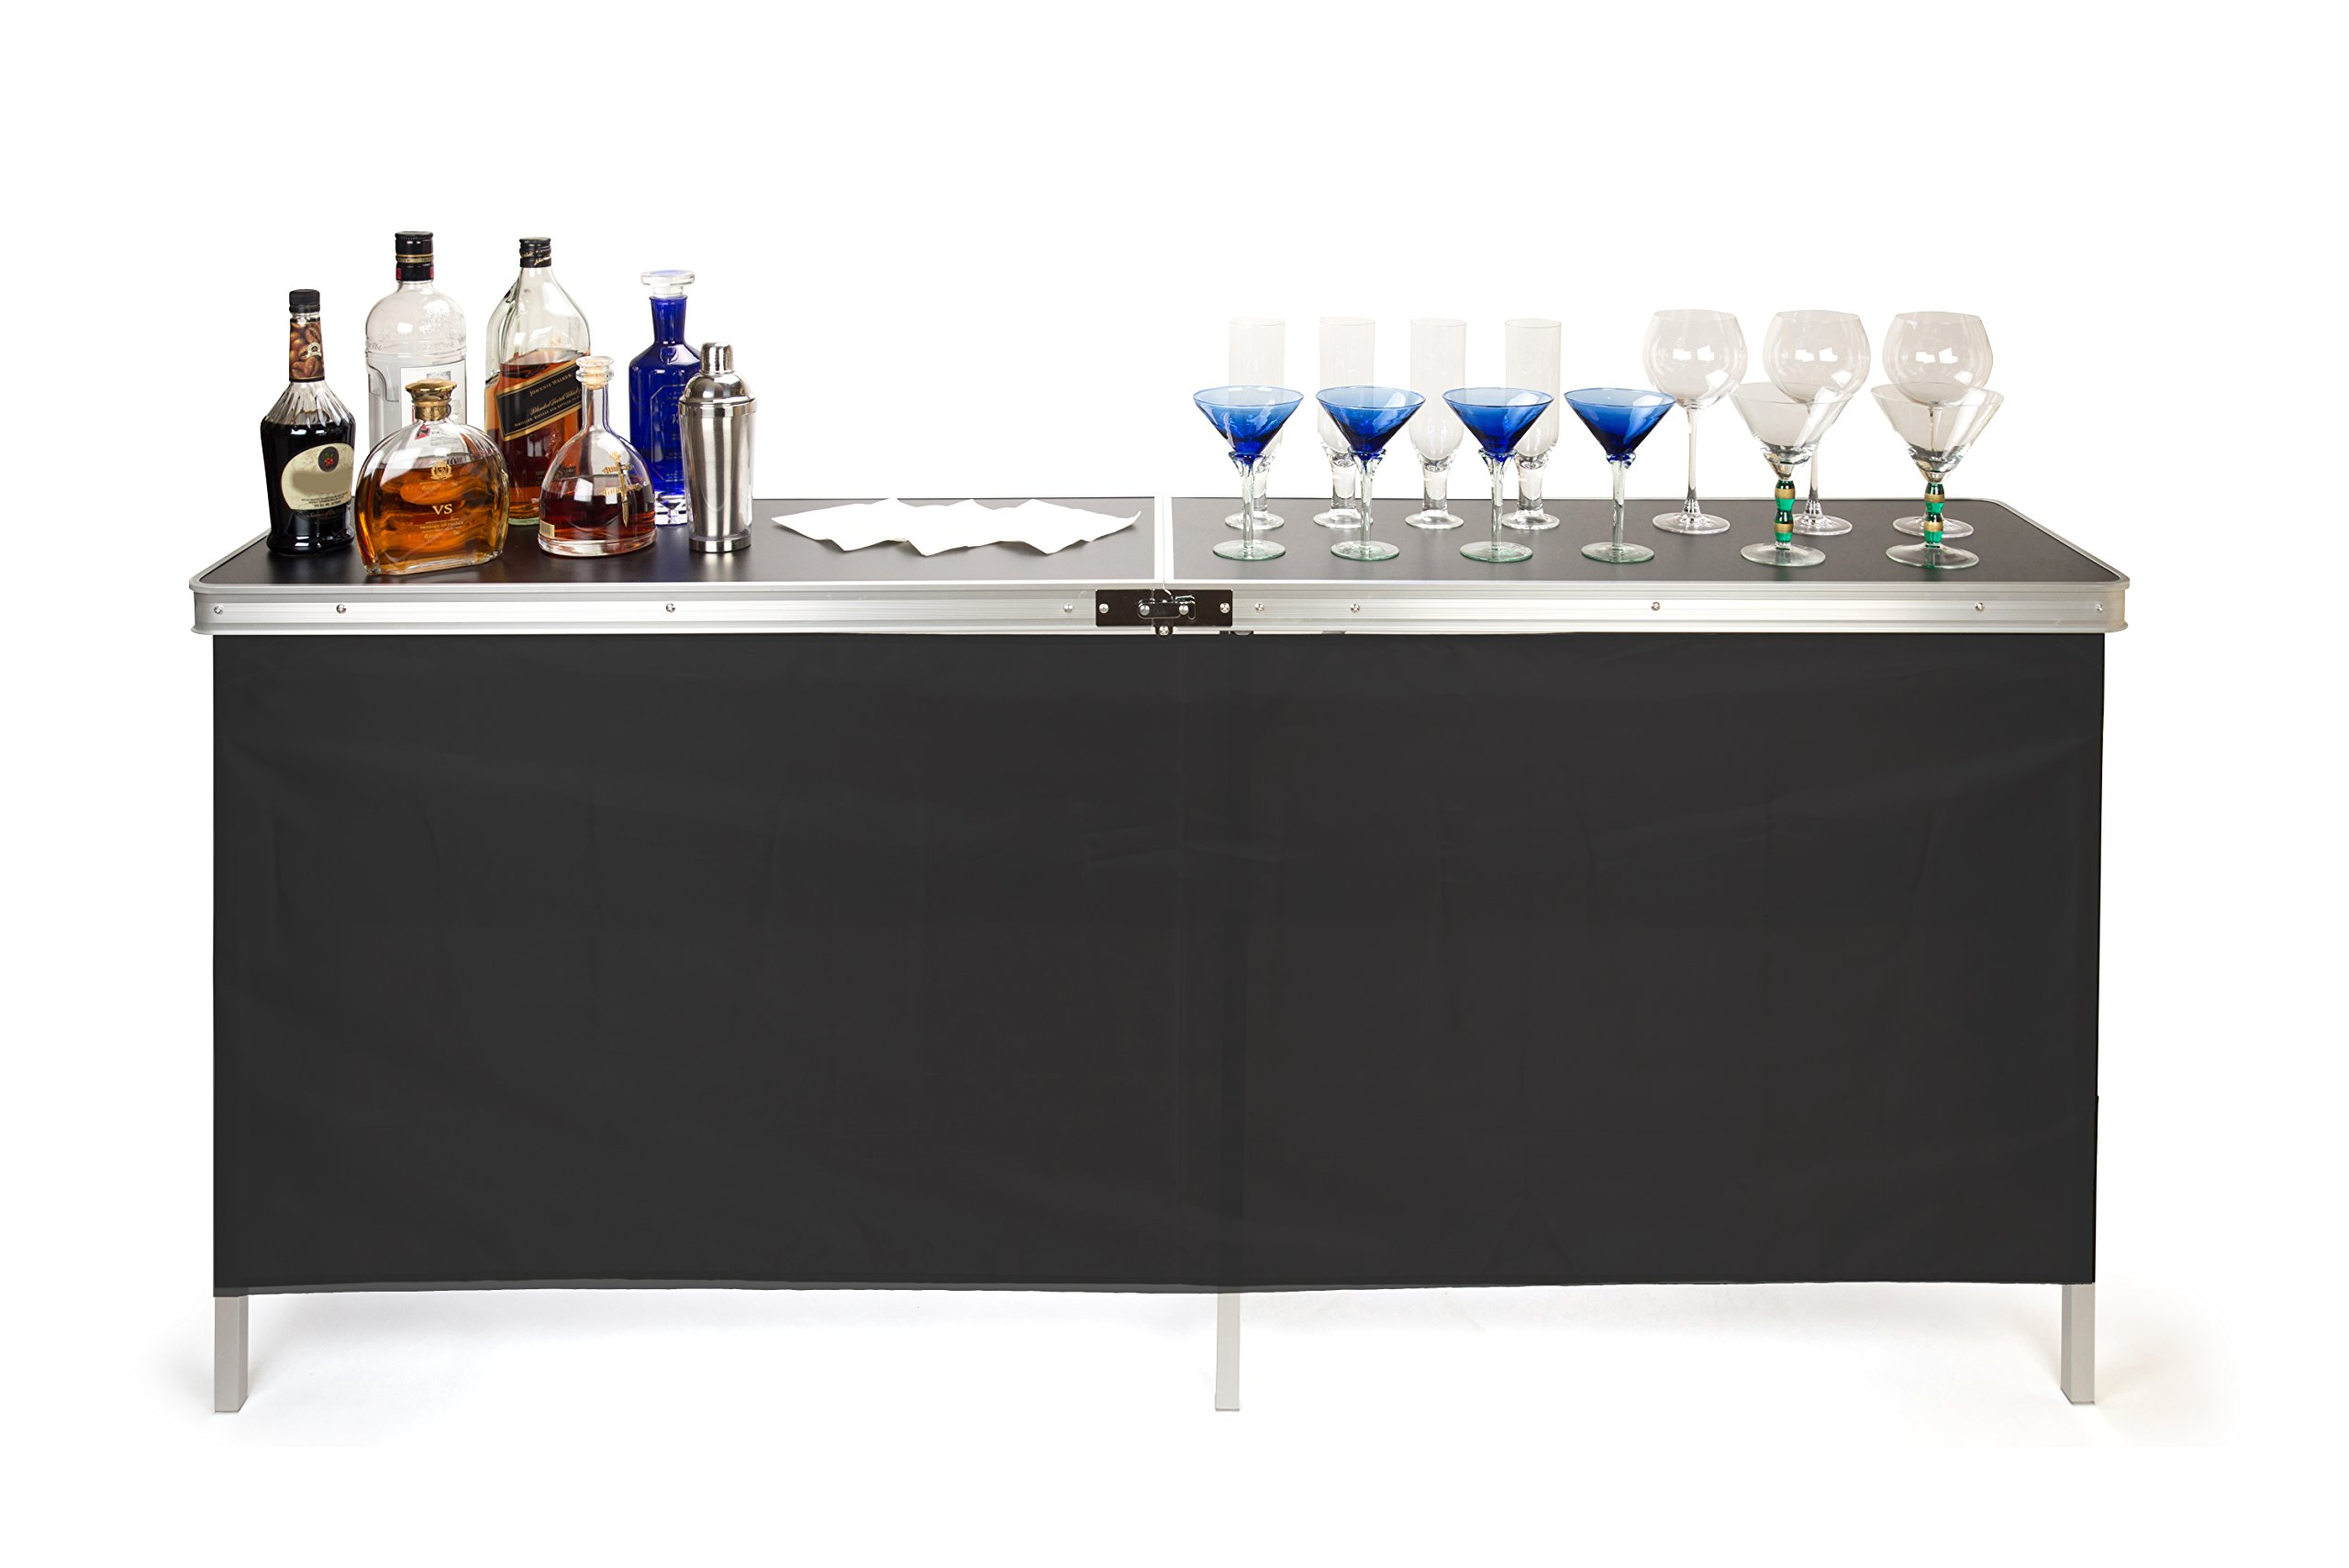 Trademark Innovations Portable Bar Table, Black by Trademark Innovations